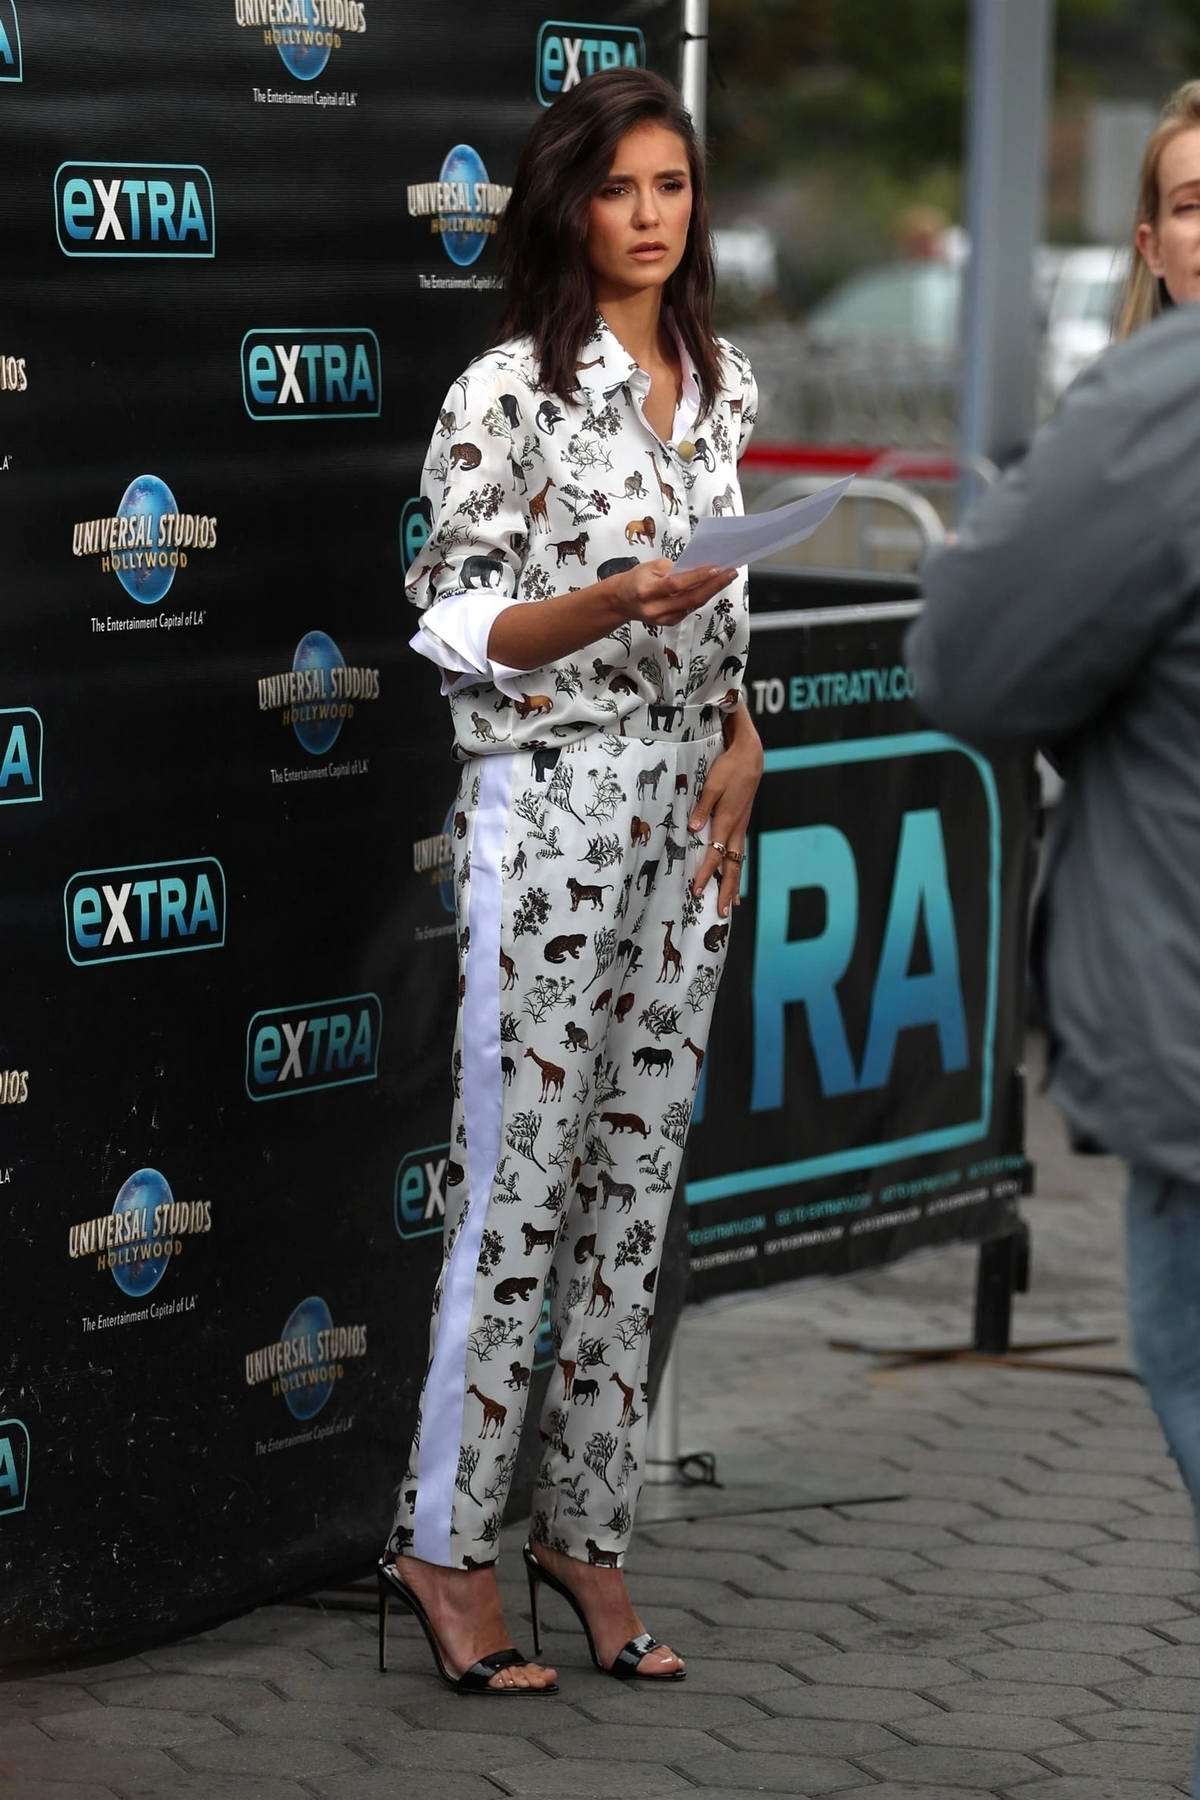 Nina Dobrev makes an appearance on 'EXTRA' at Universal Studios in Universal City, California